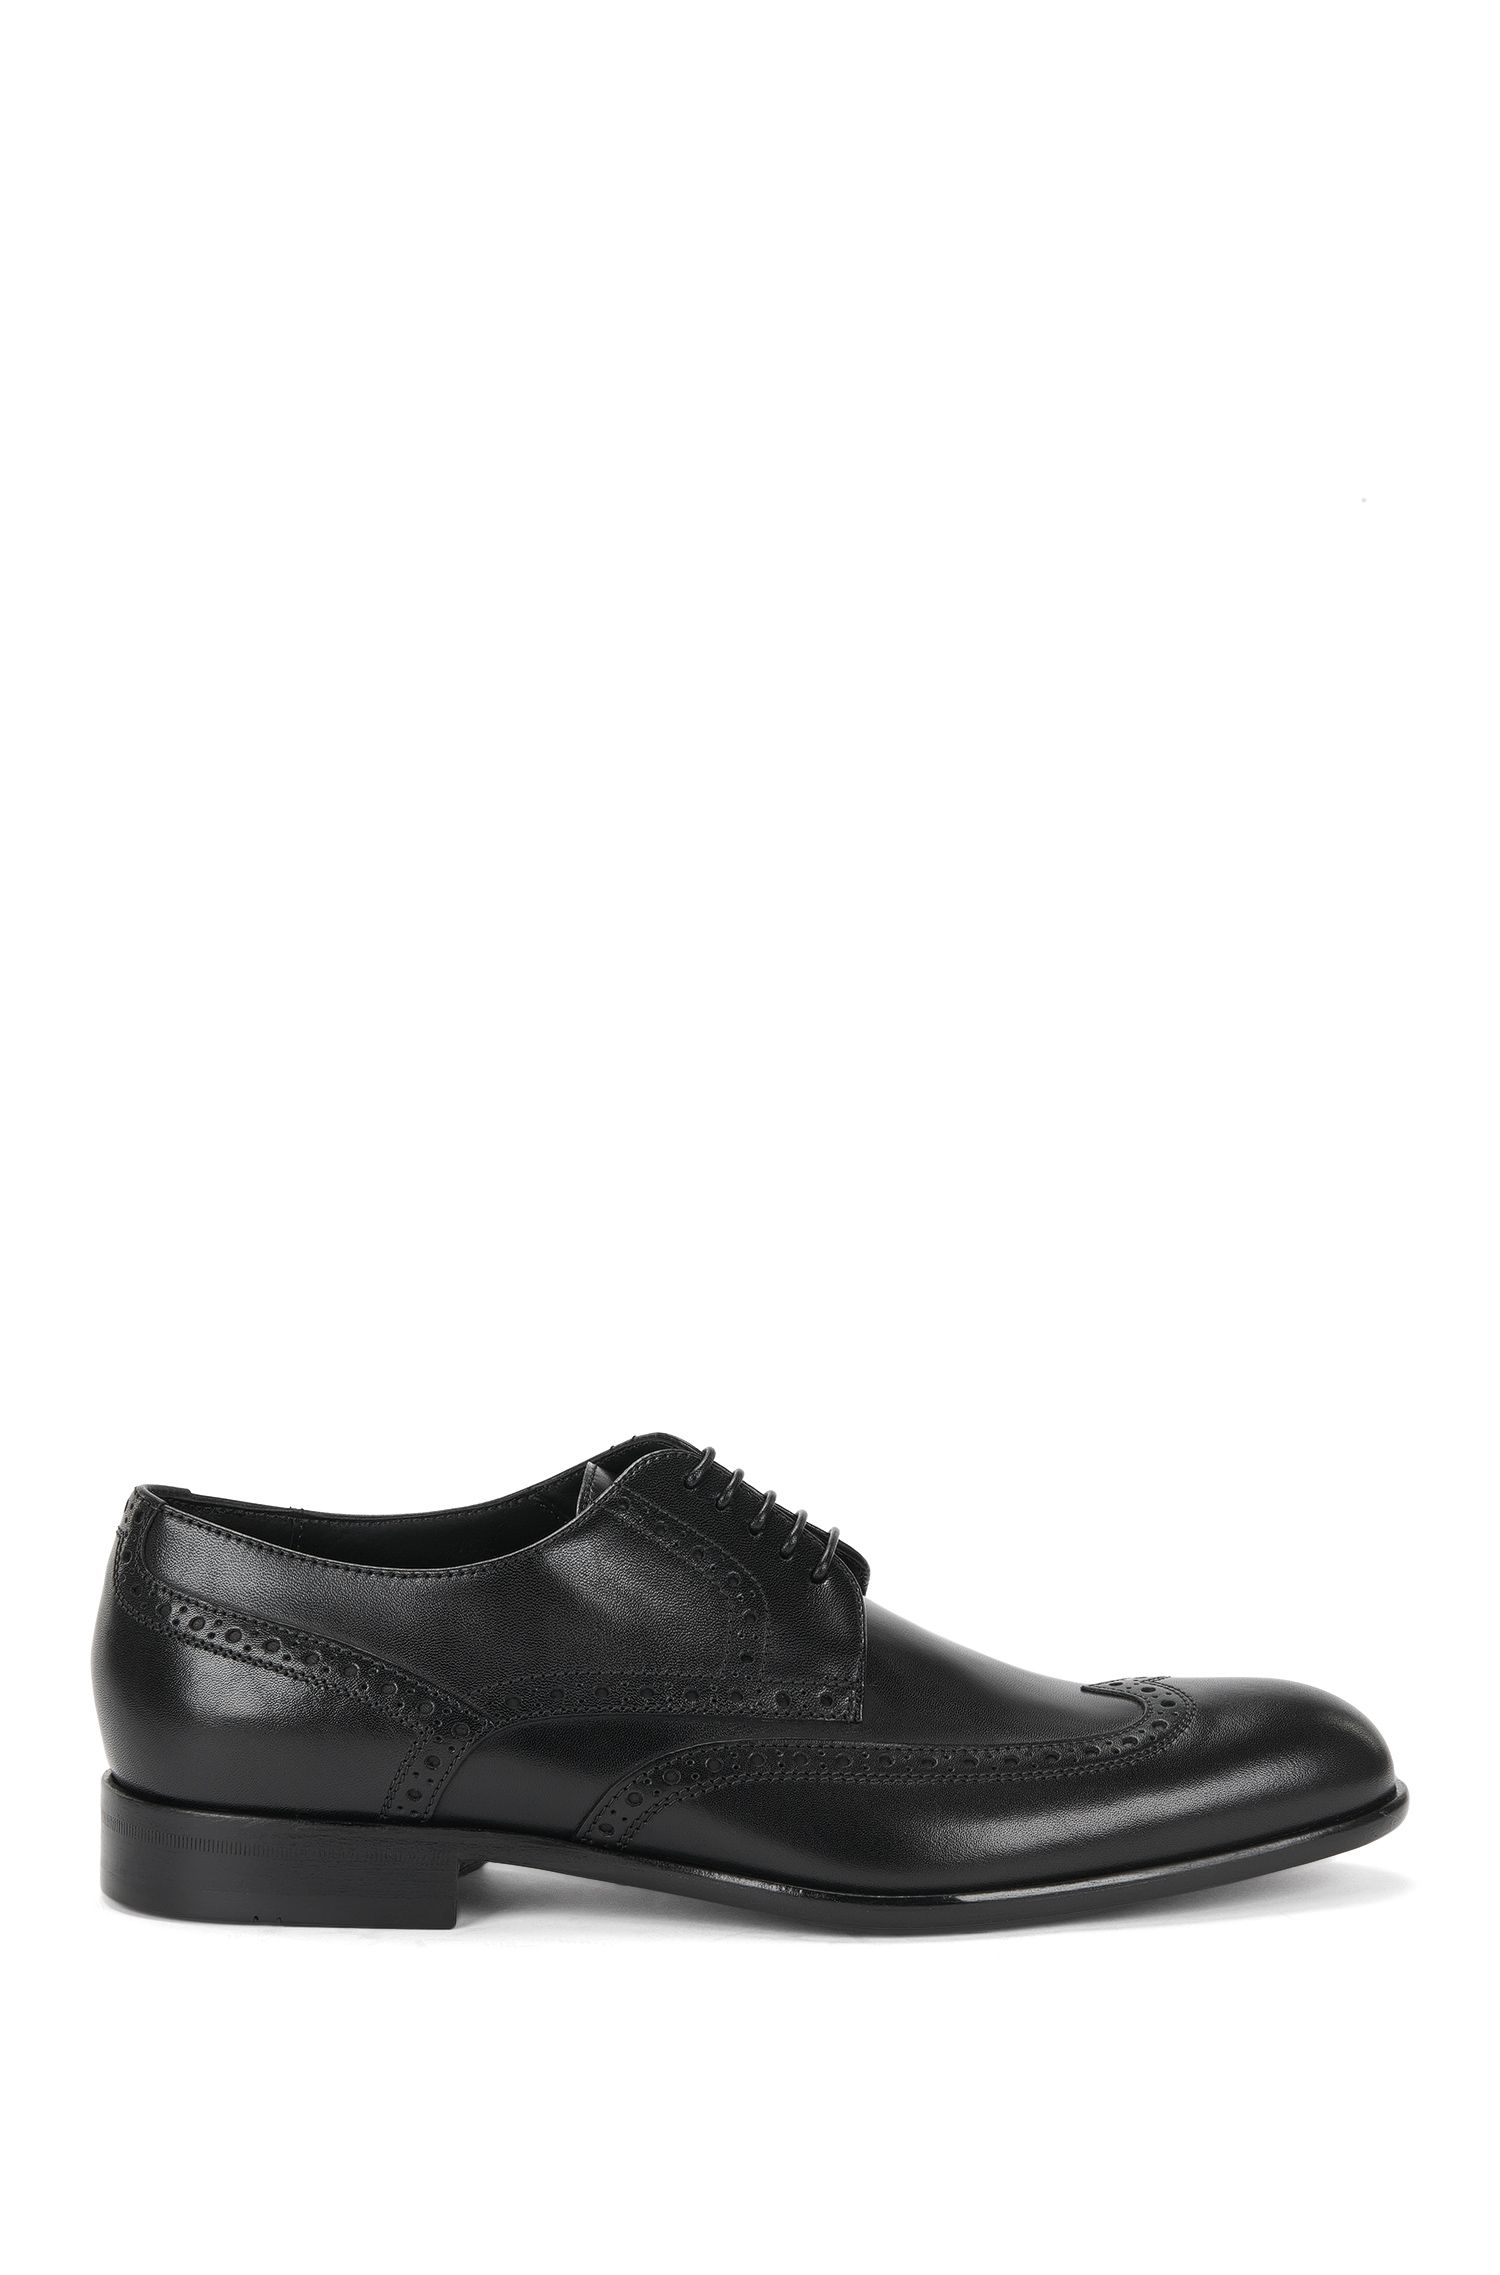 'Manperd' | Italian Calfskin Wingtip Derby Dress Shoes